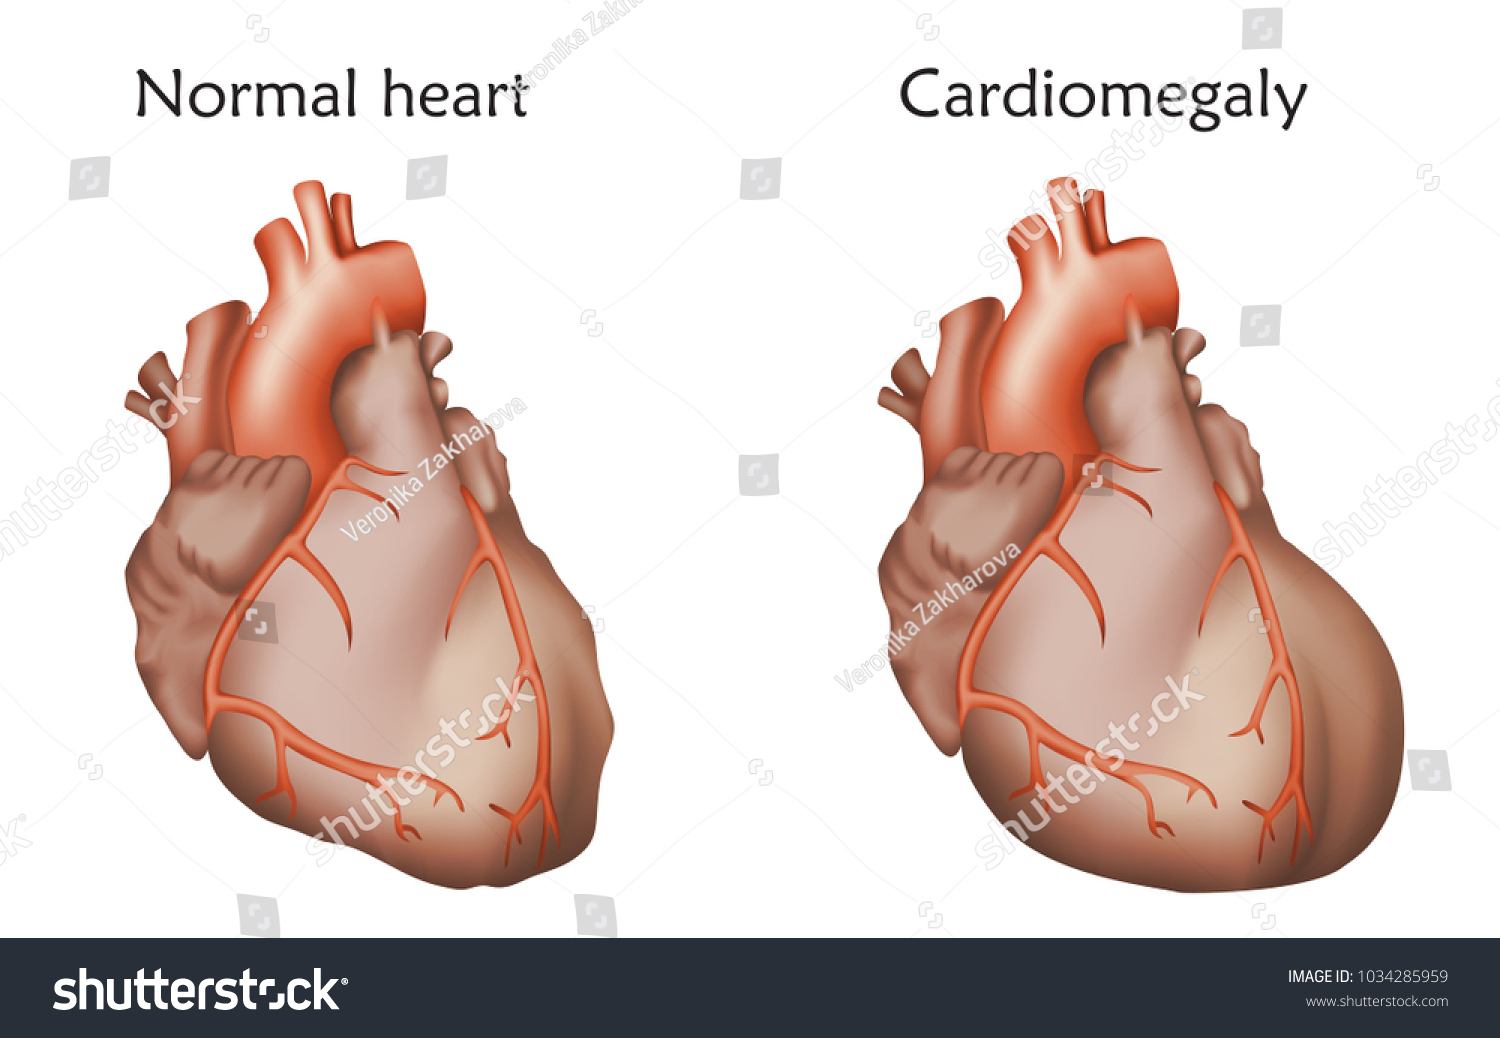 Cardiomegaly Enlarged Normal Heart Muscles Anatomy Stock Vector ...